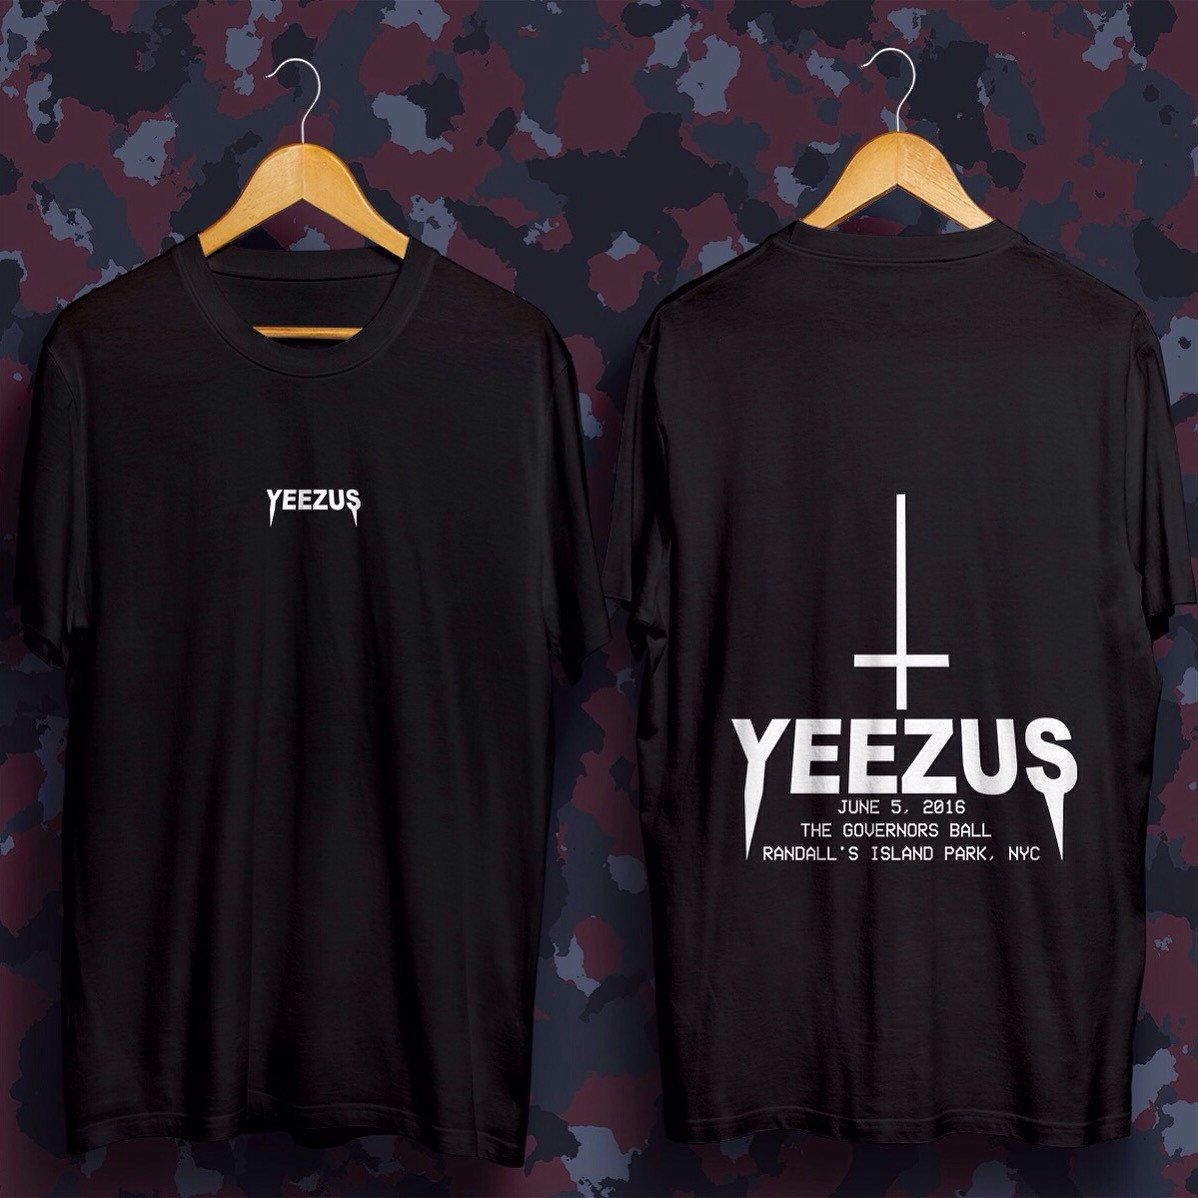 Here we go!! Are you ready to the YEEZUS SHOW on 5 June in NYC?